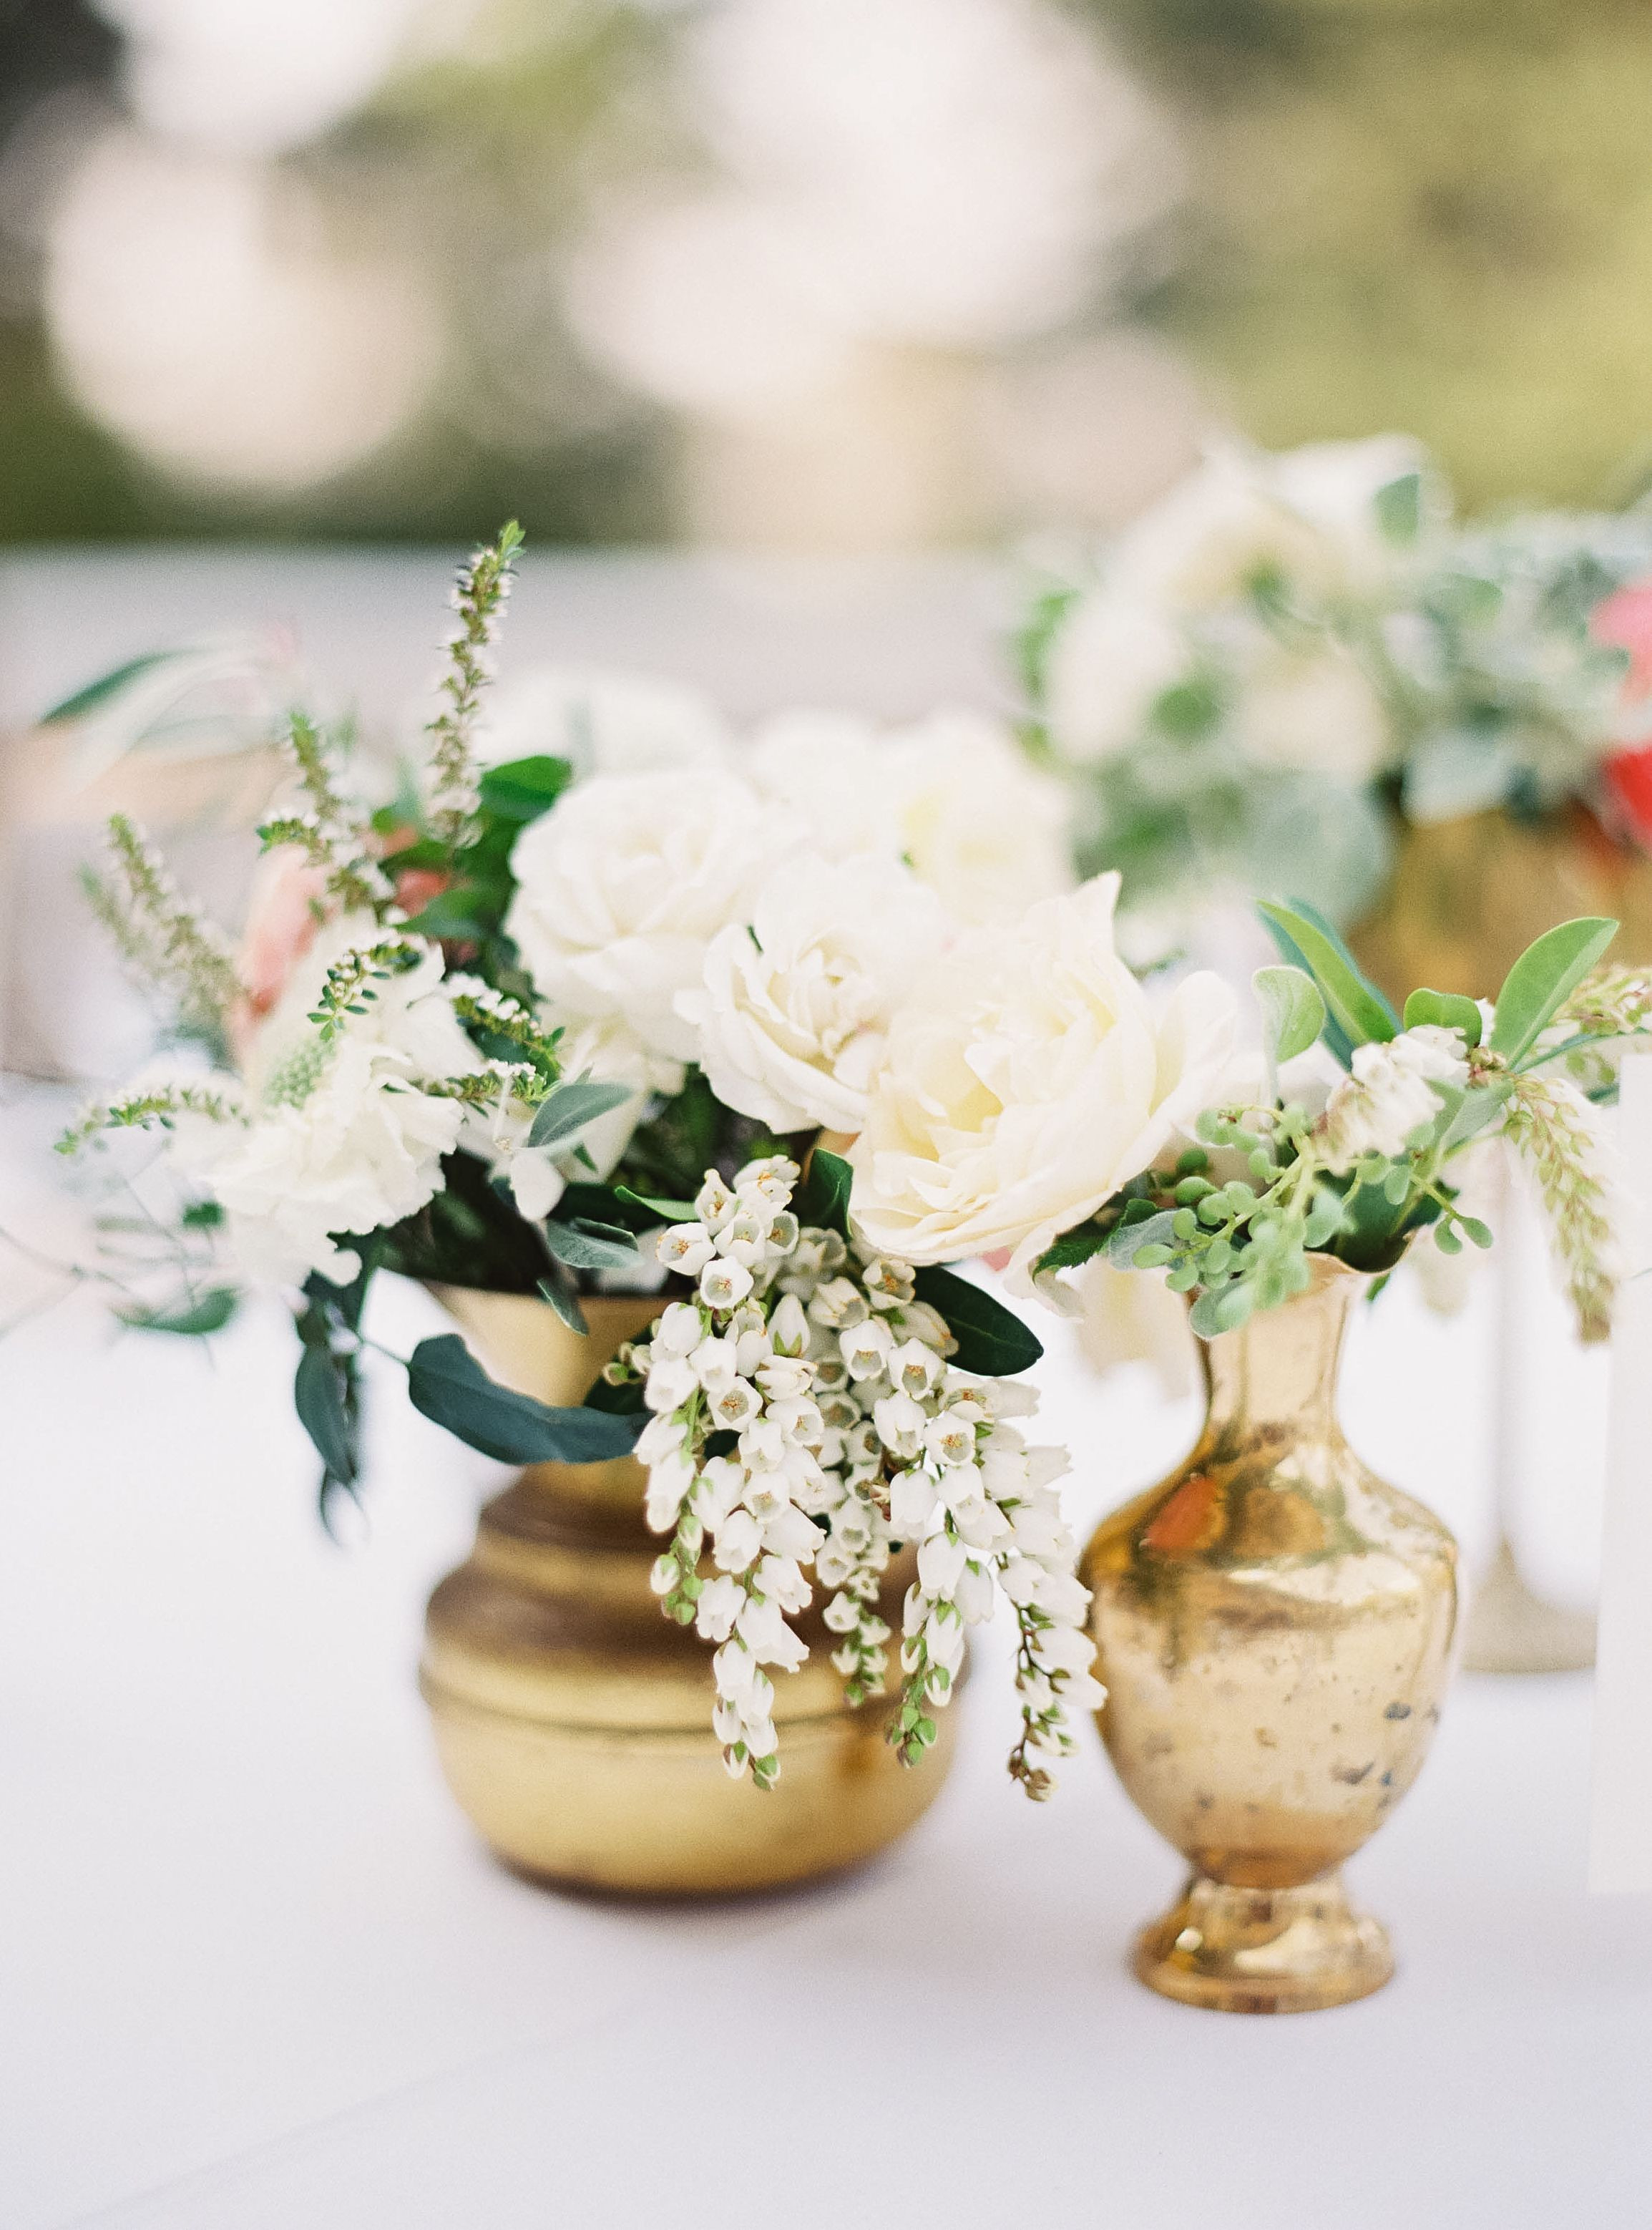 flower vase from beauty and the beast of how to plan a beauty the beast inspired wedding wedding in set in saratoga california this couple infused an elegant english garden vibe into their wedding day with romantic calligraphy and florals throughout